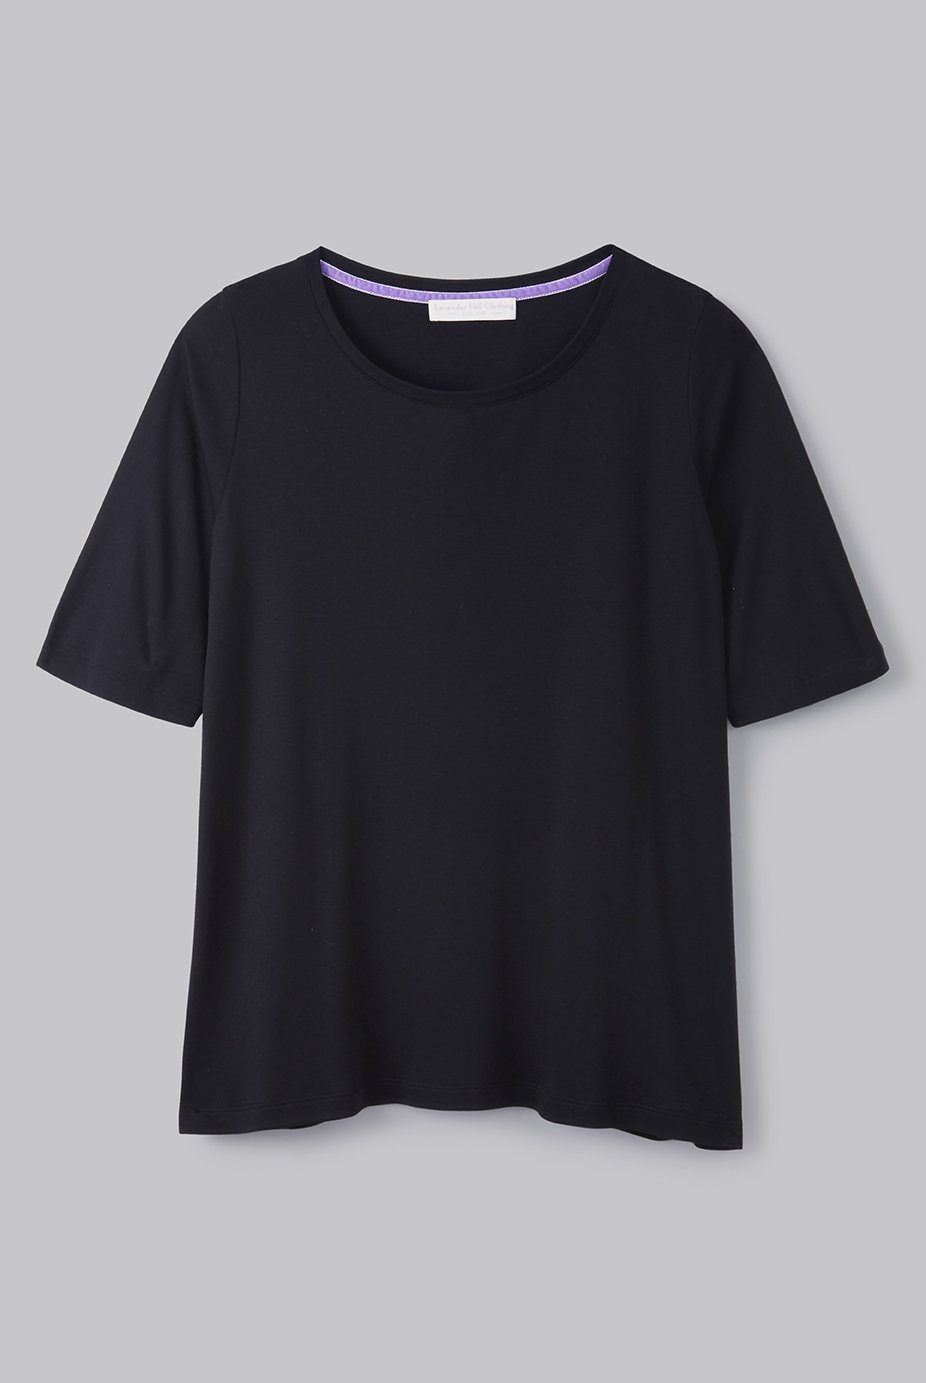 Mid Sleeve A-line Micro Modal T-shirt Long Sleeve T-shirt Lavender Hill Clothing